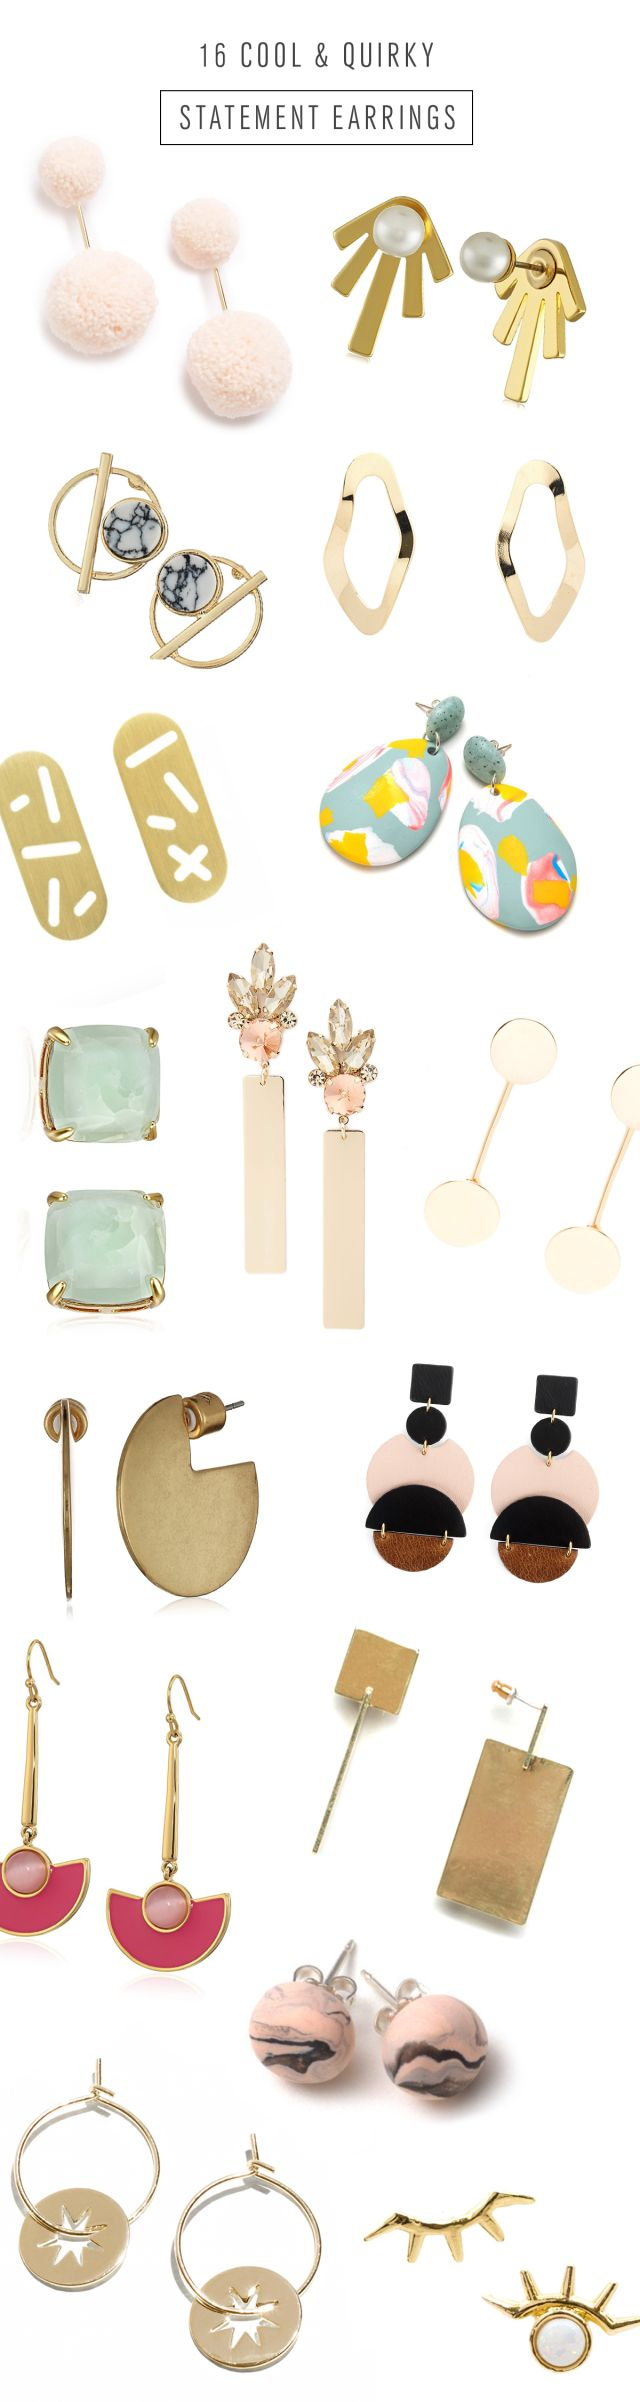 Our Favorite Cool and Quirky Statement Earrings